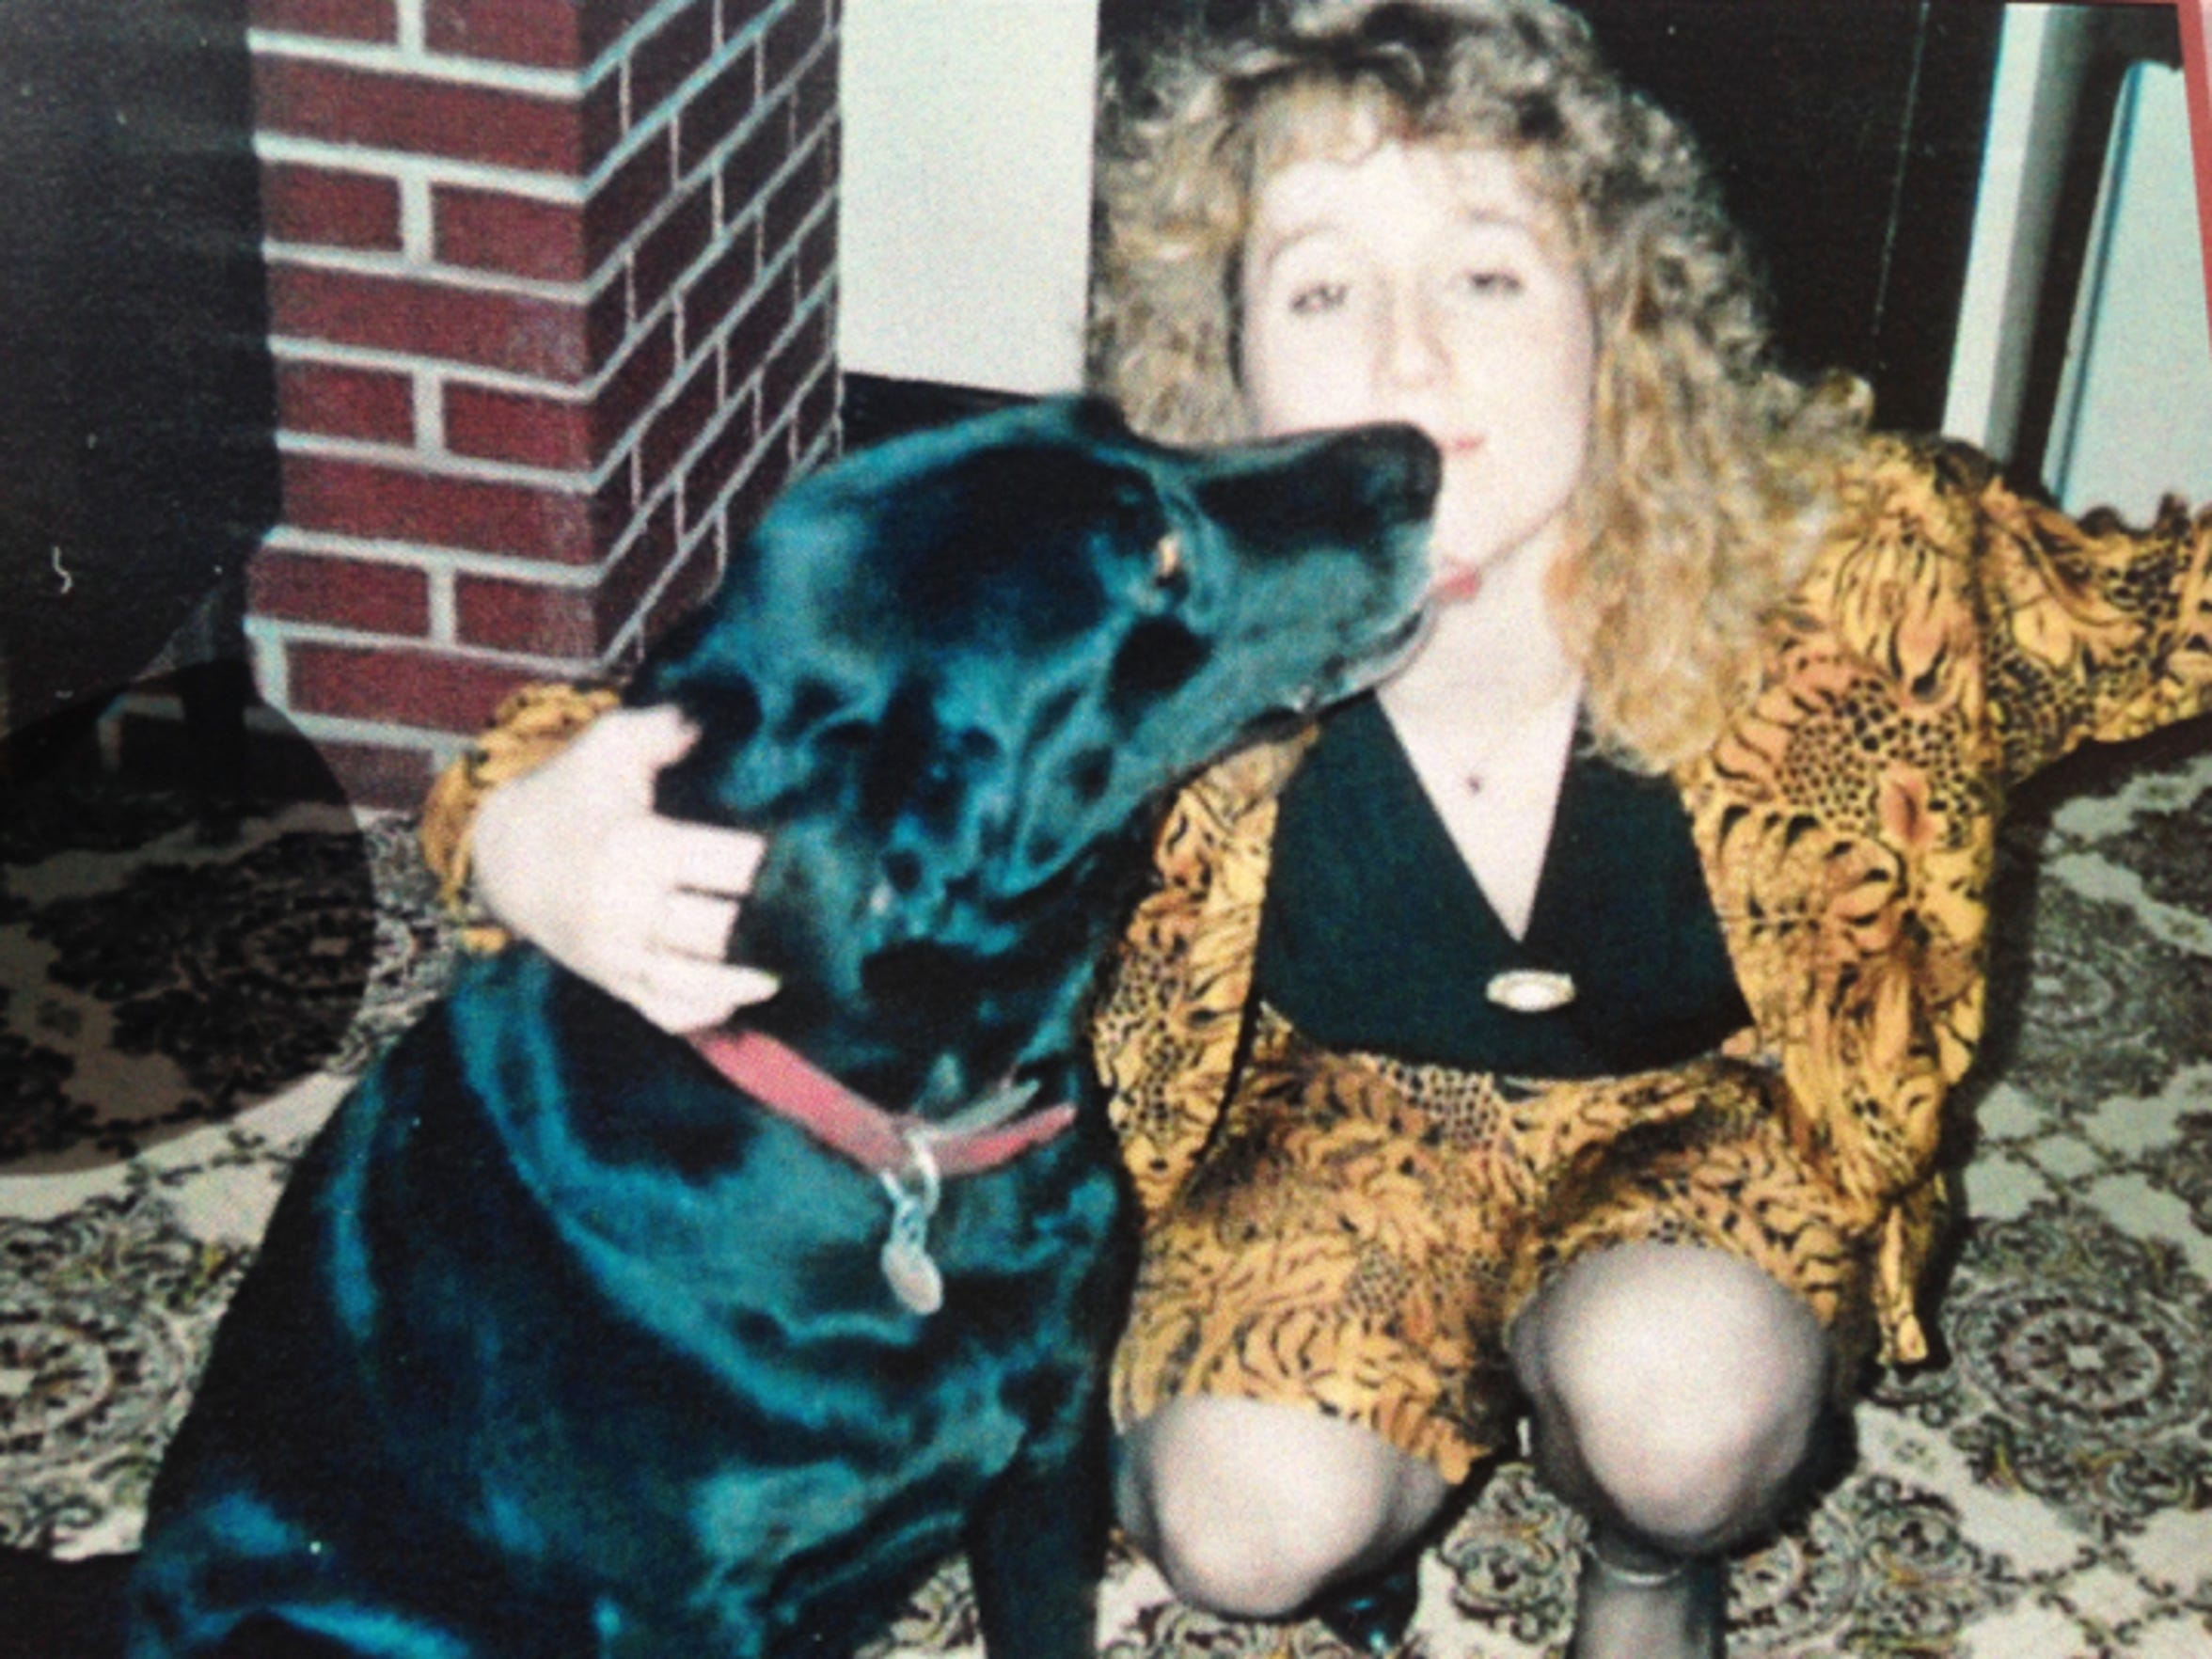 Teresa and her dog Dukie